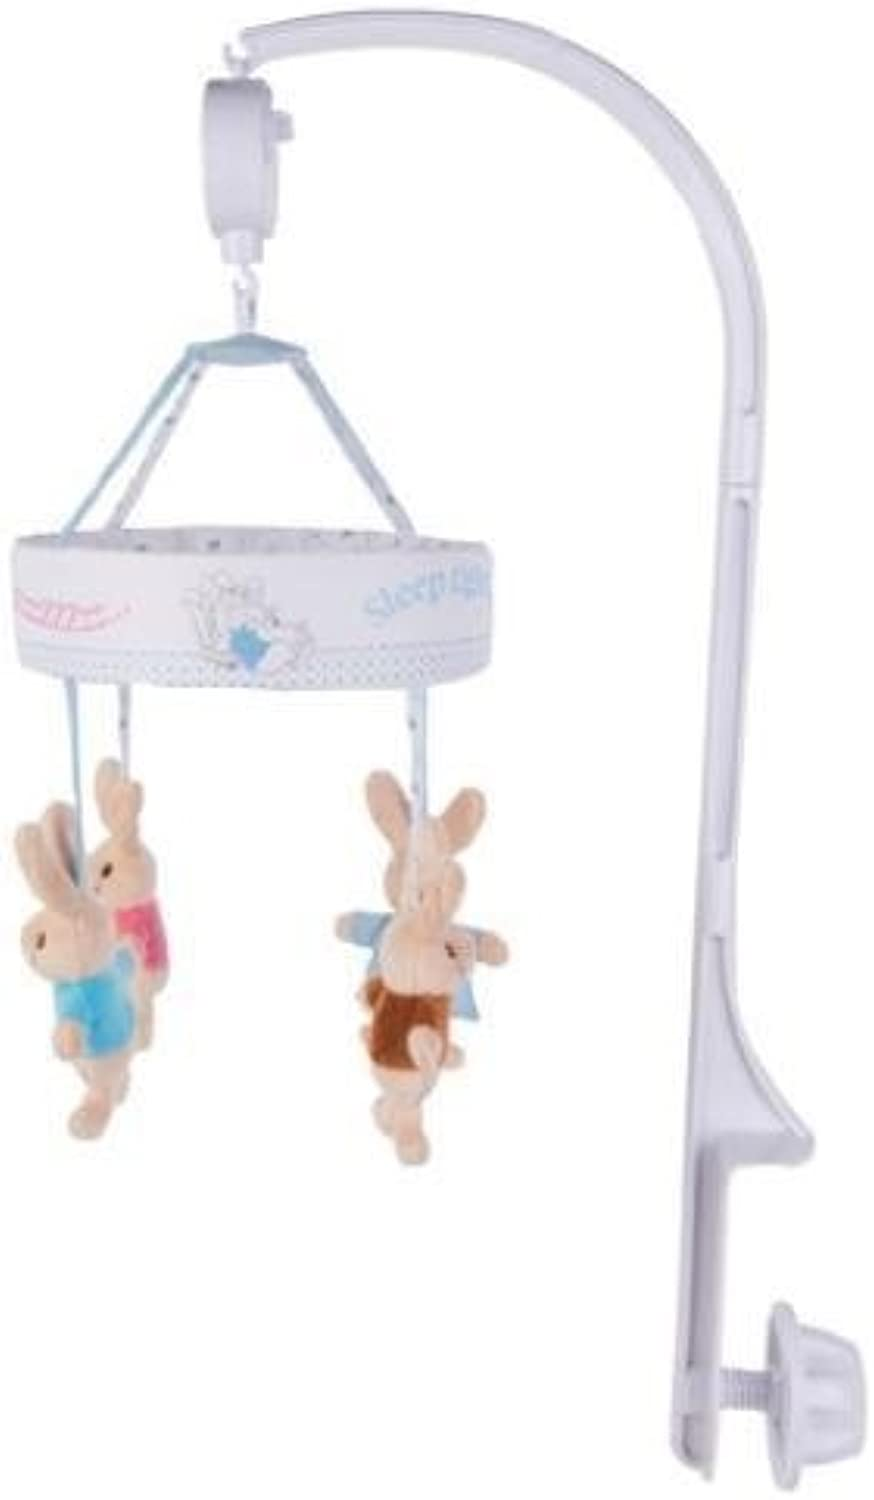 BCreative Peter Rabbit Flopsy Bunny Plush Soft Toy My First Blanket Mobile Jack in the Box (Cot Mobile)